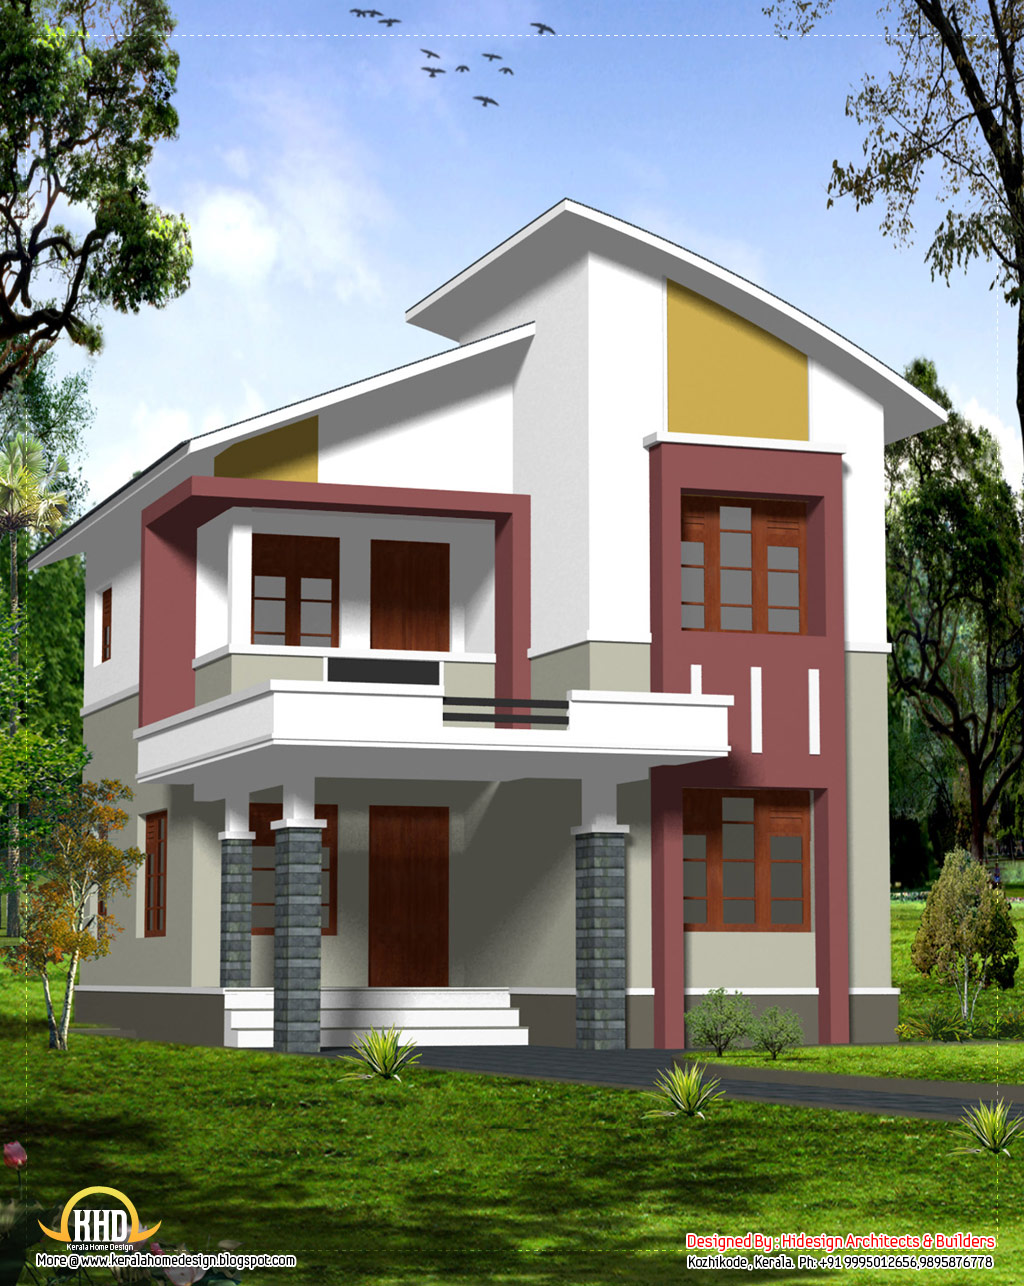 Budget home design 2140 sq ft kerala home design and for Home plans and designs